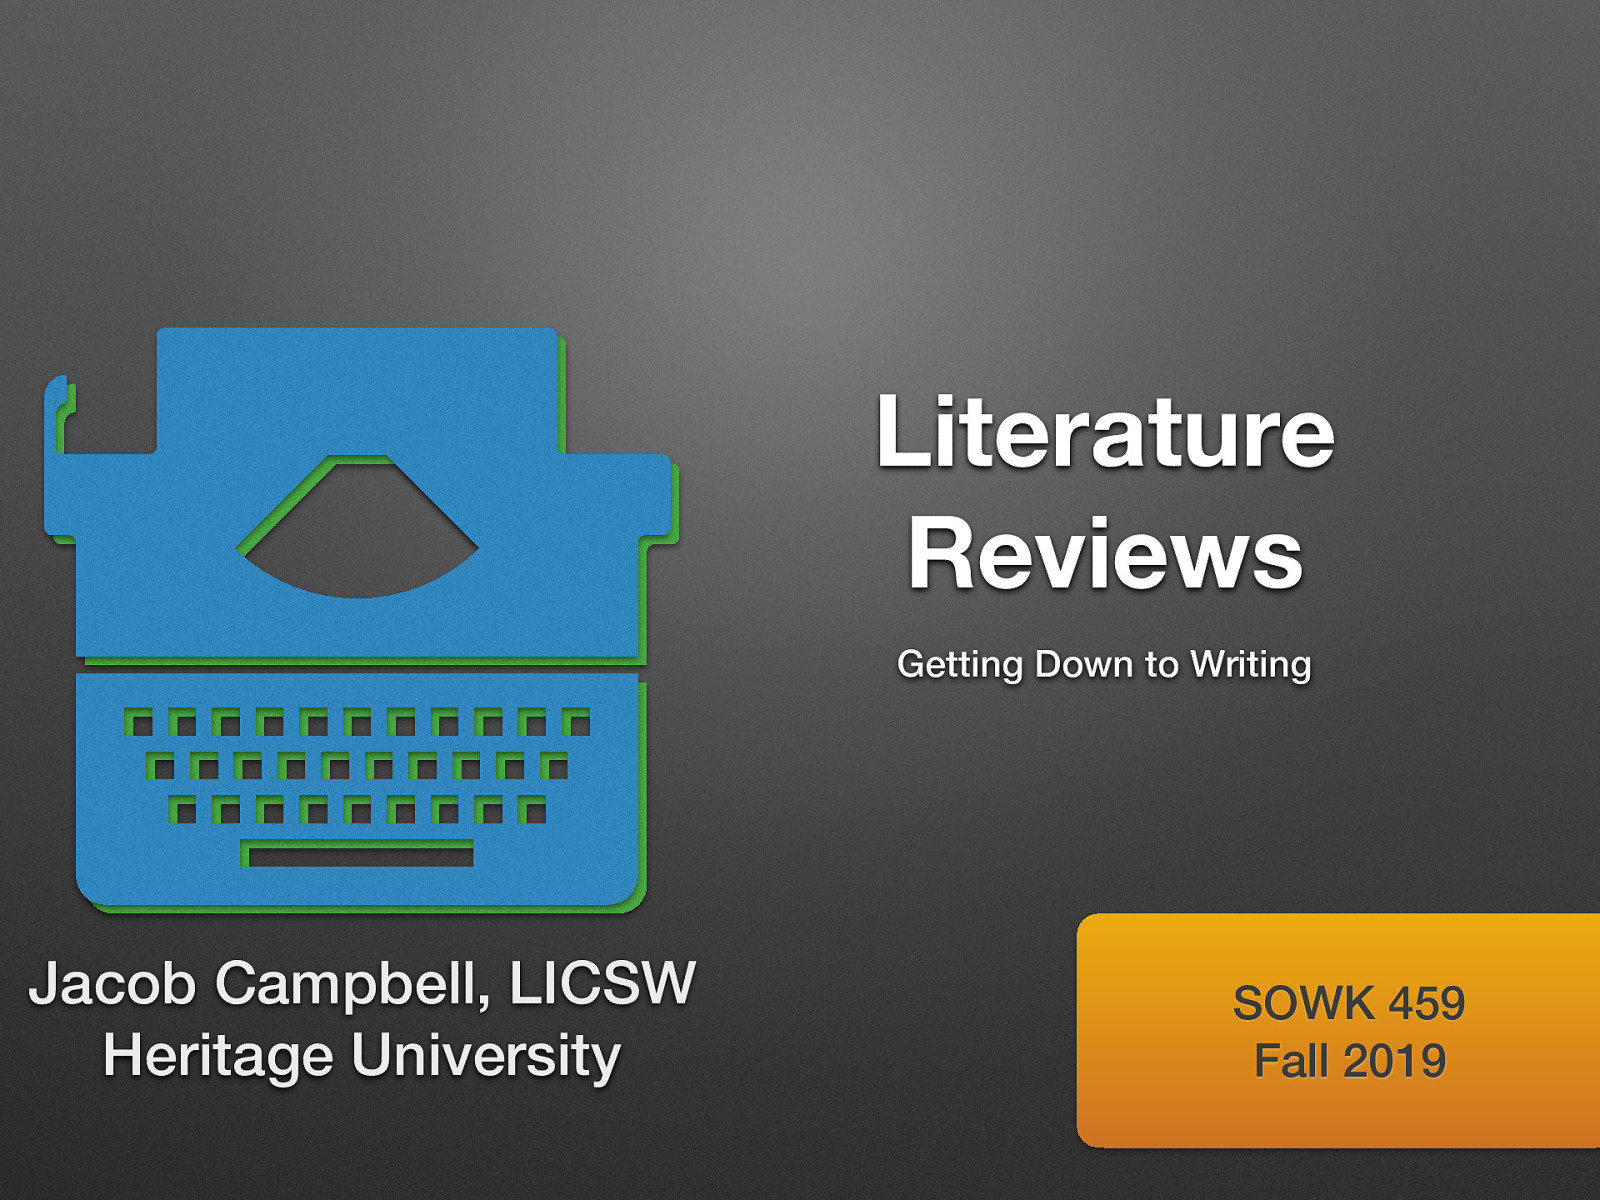 Week 09 - Literature Reviews: Getting Down to Writing